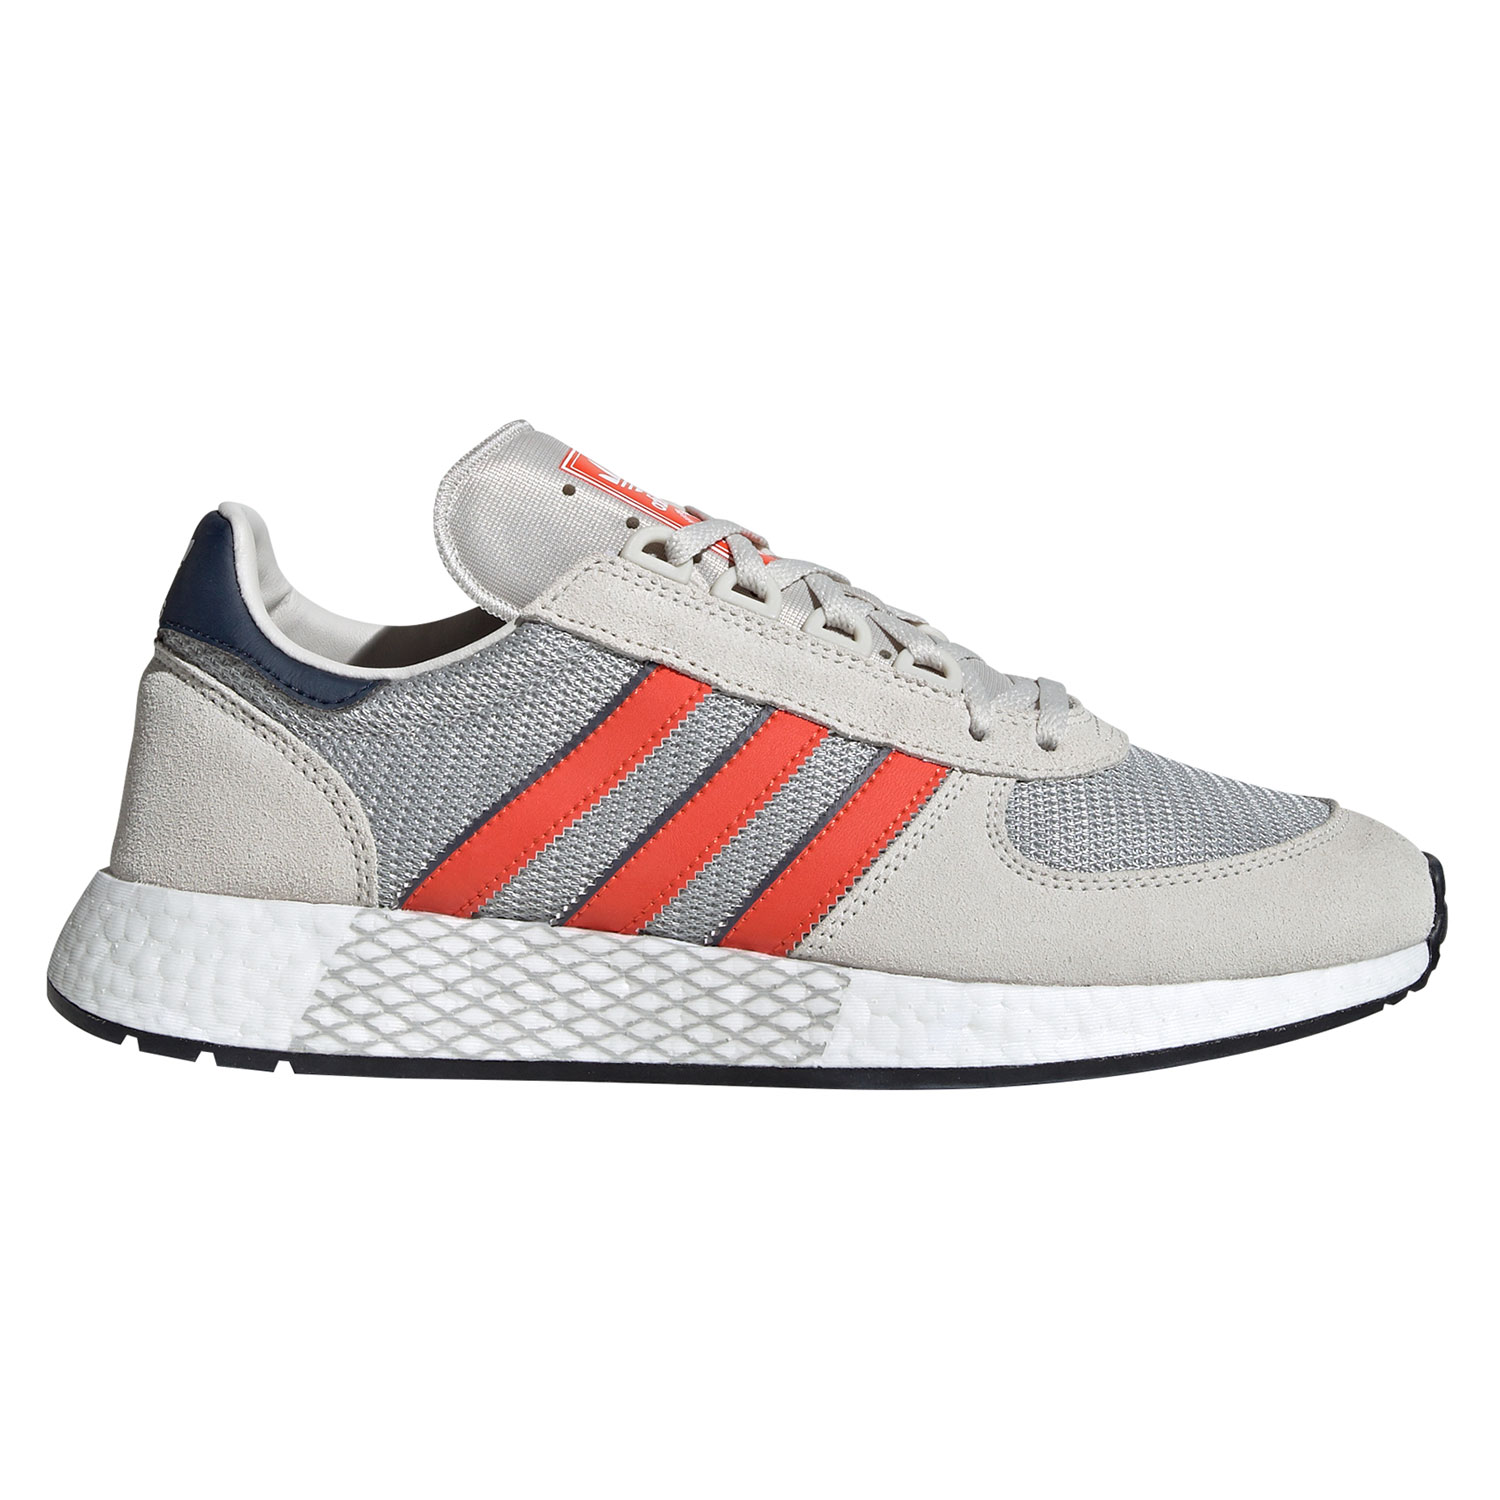 new specials sale online factory outlet adidas Originals Marathon Tech Herren hellgrau orange EE4917